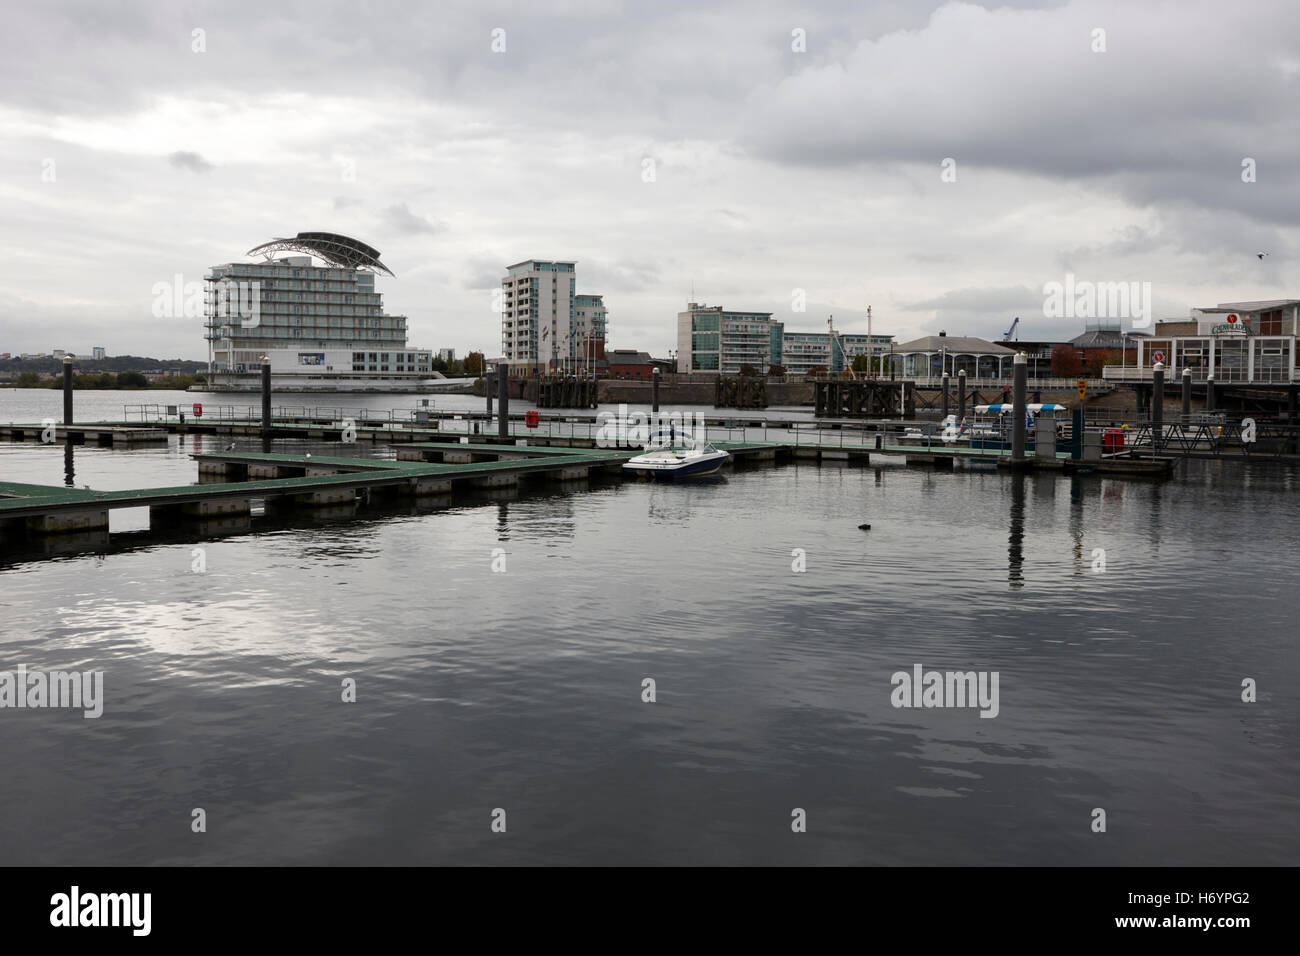 Cardiff bay marina on an overcast day  Wales United Kingdom - Stock Image